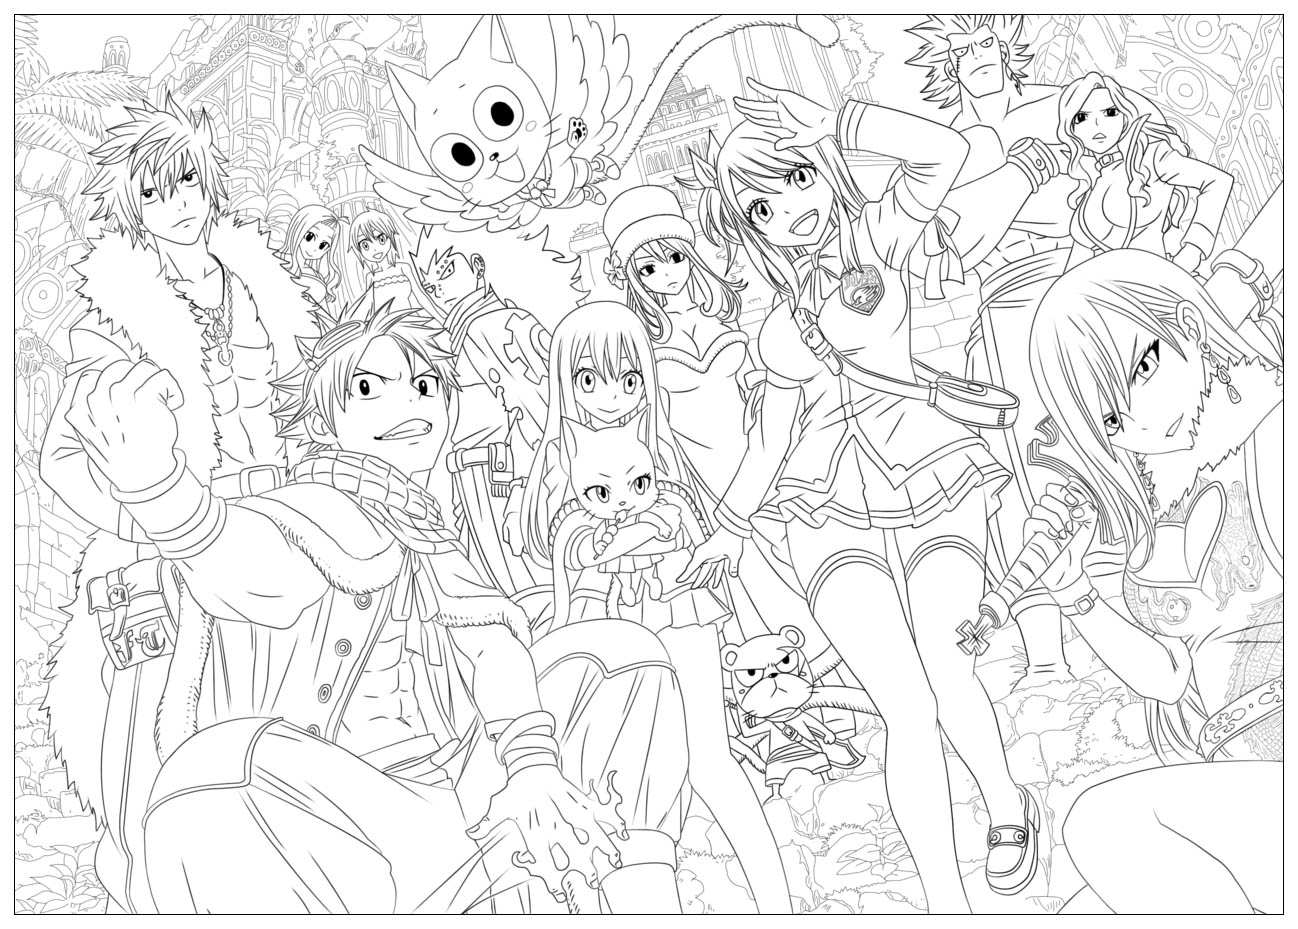 Kawaii Personnages Fun Tobeyd Coloriage Kawaii Coloriages Pour